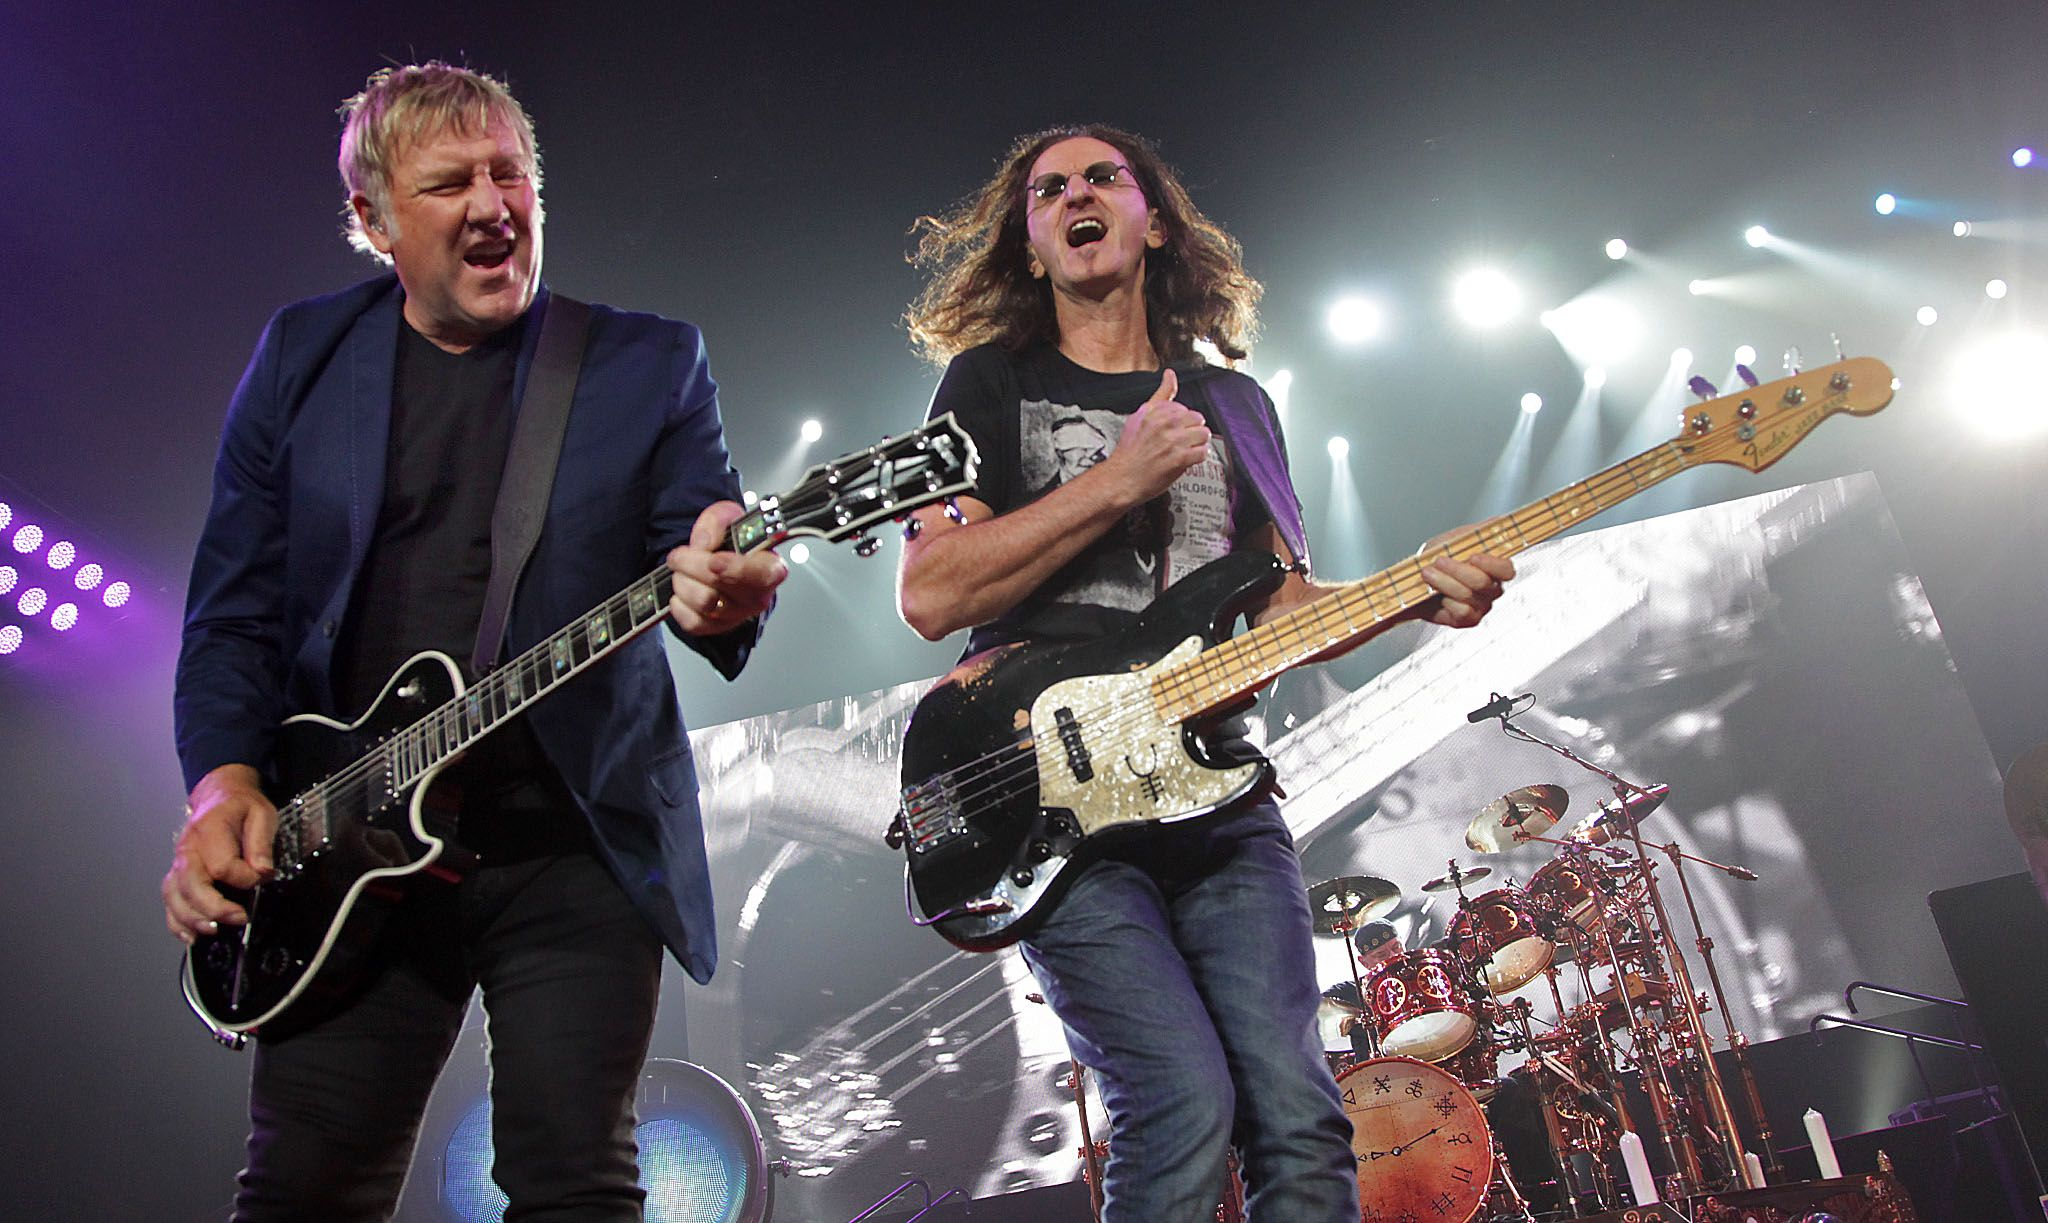 RUSH: Alex Lifeson e Geddy Lee vogliono a comporre altra musica""